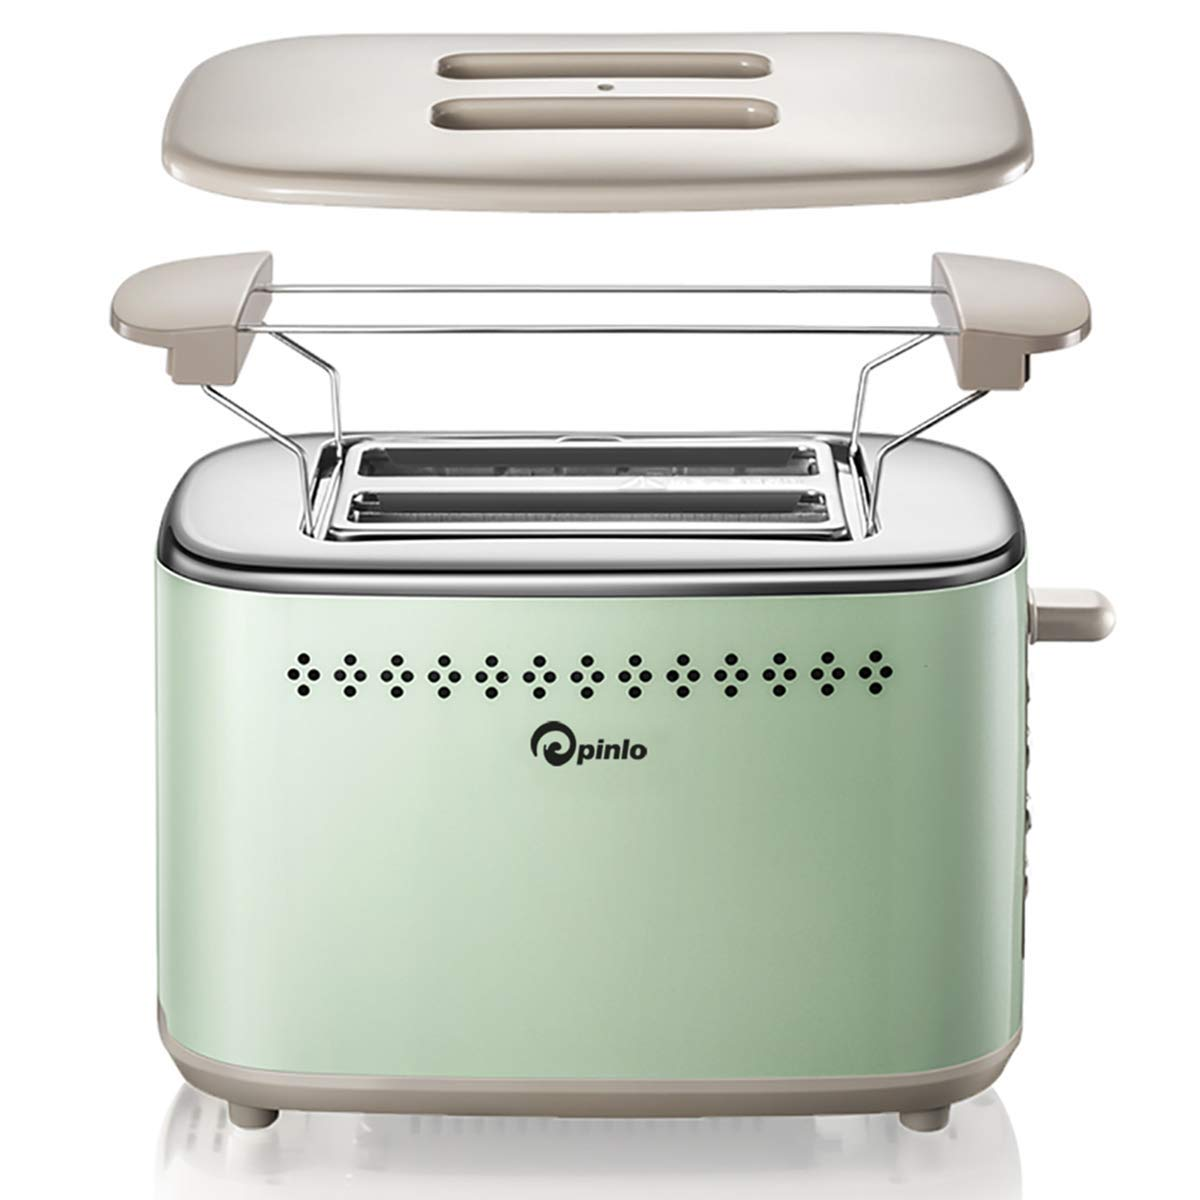 Toaster 2-Slice Stainless Steel Toasters with 2 Extra Wide Slots 6 Browning Dials and Removable Crumb Tray Warming Rack for Breakfast Bread Muffins Ovens Mint Green Retro Toasters by pinlo